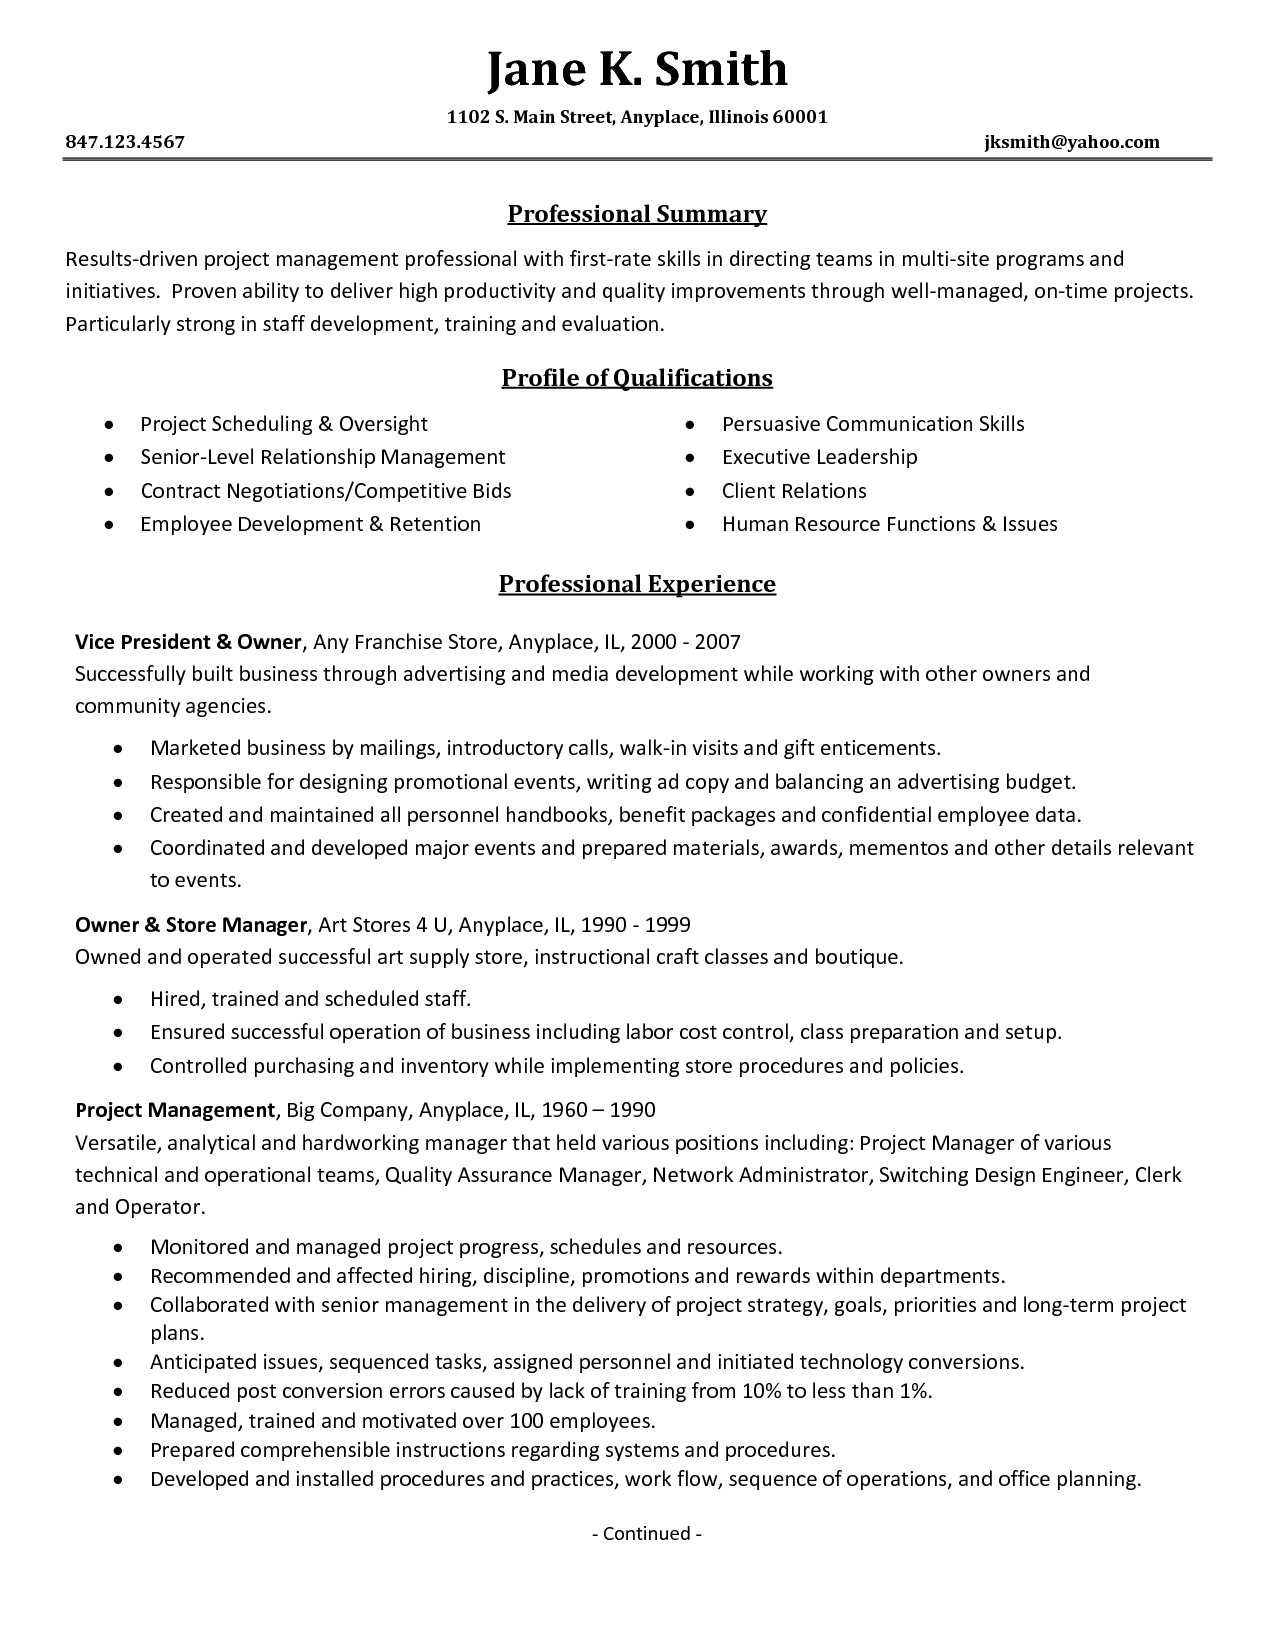 Resume Examples Skills Mesmerizing Leadership Skills Resume Leadership Skills Resume Template…  Job Inspiration Design